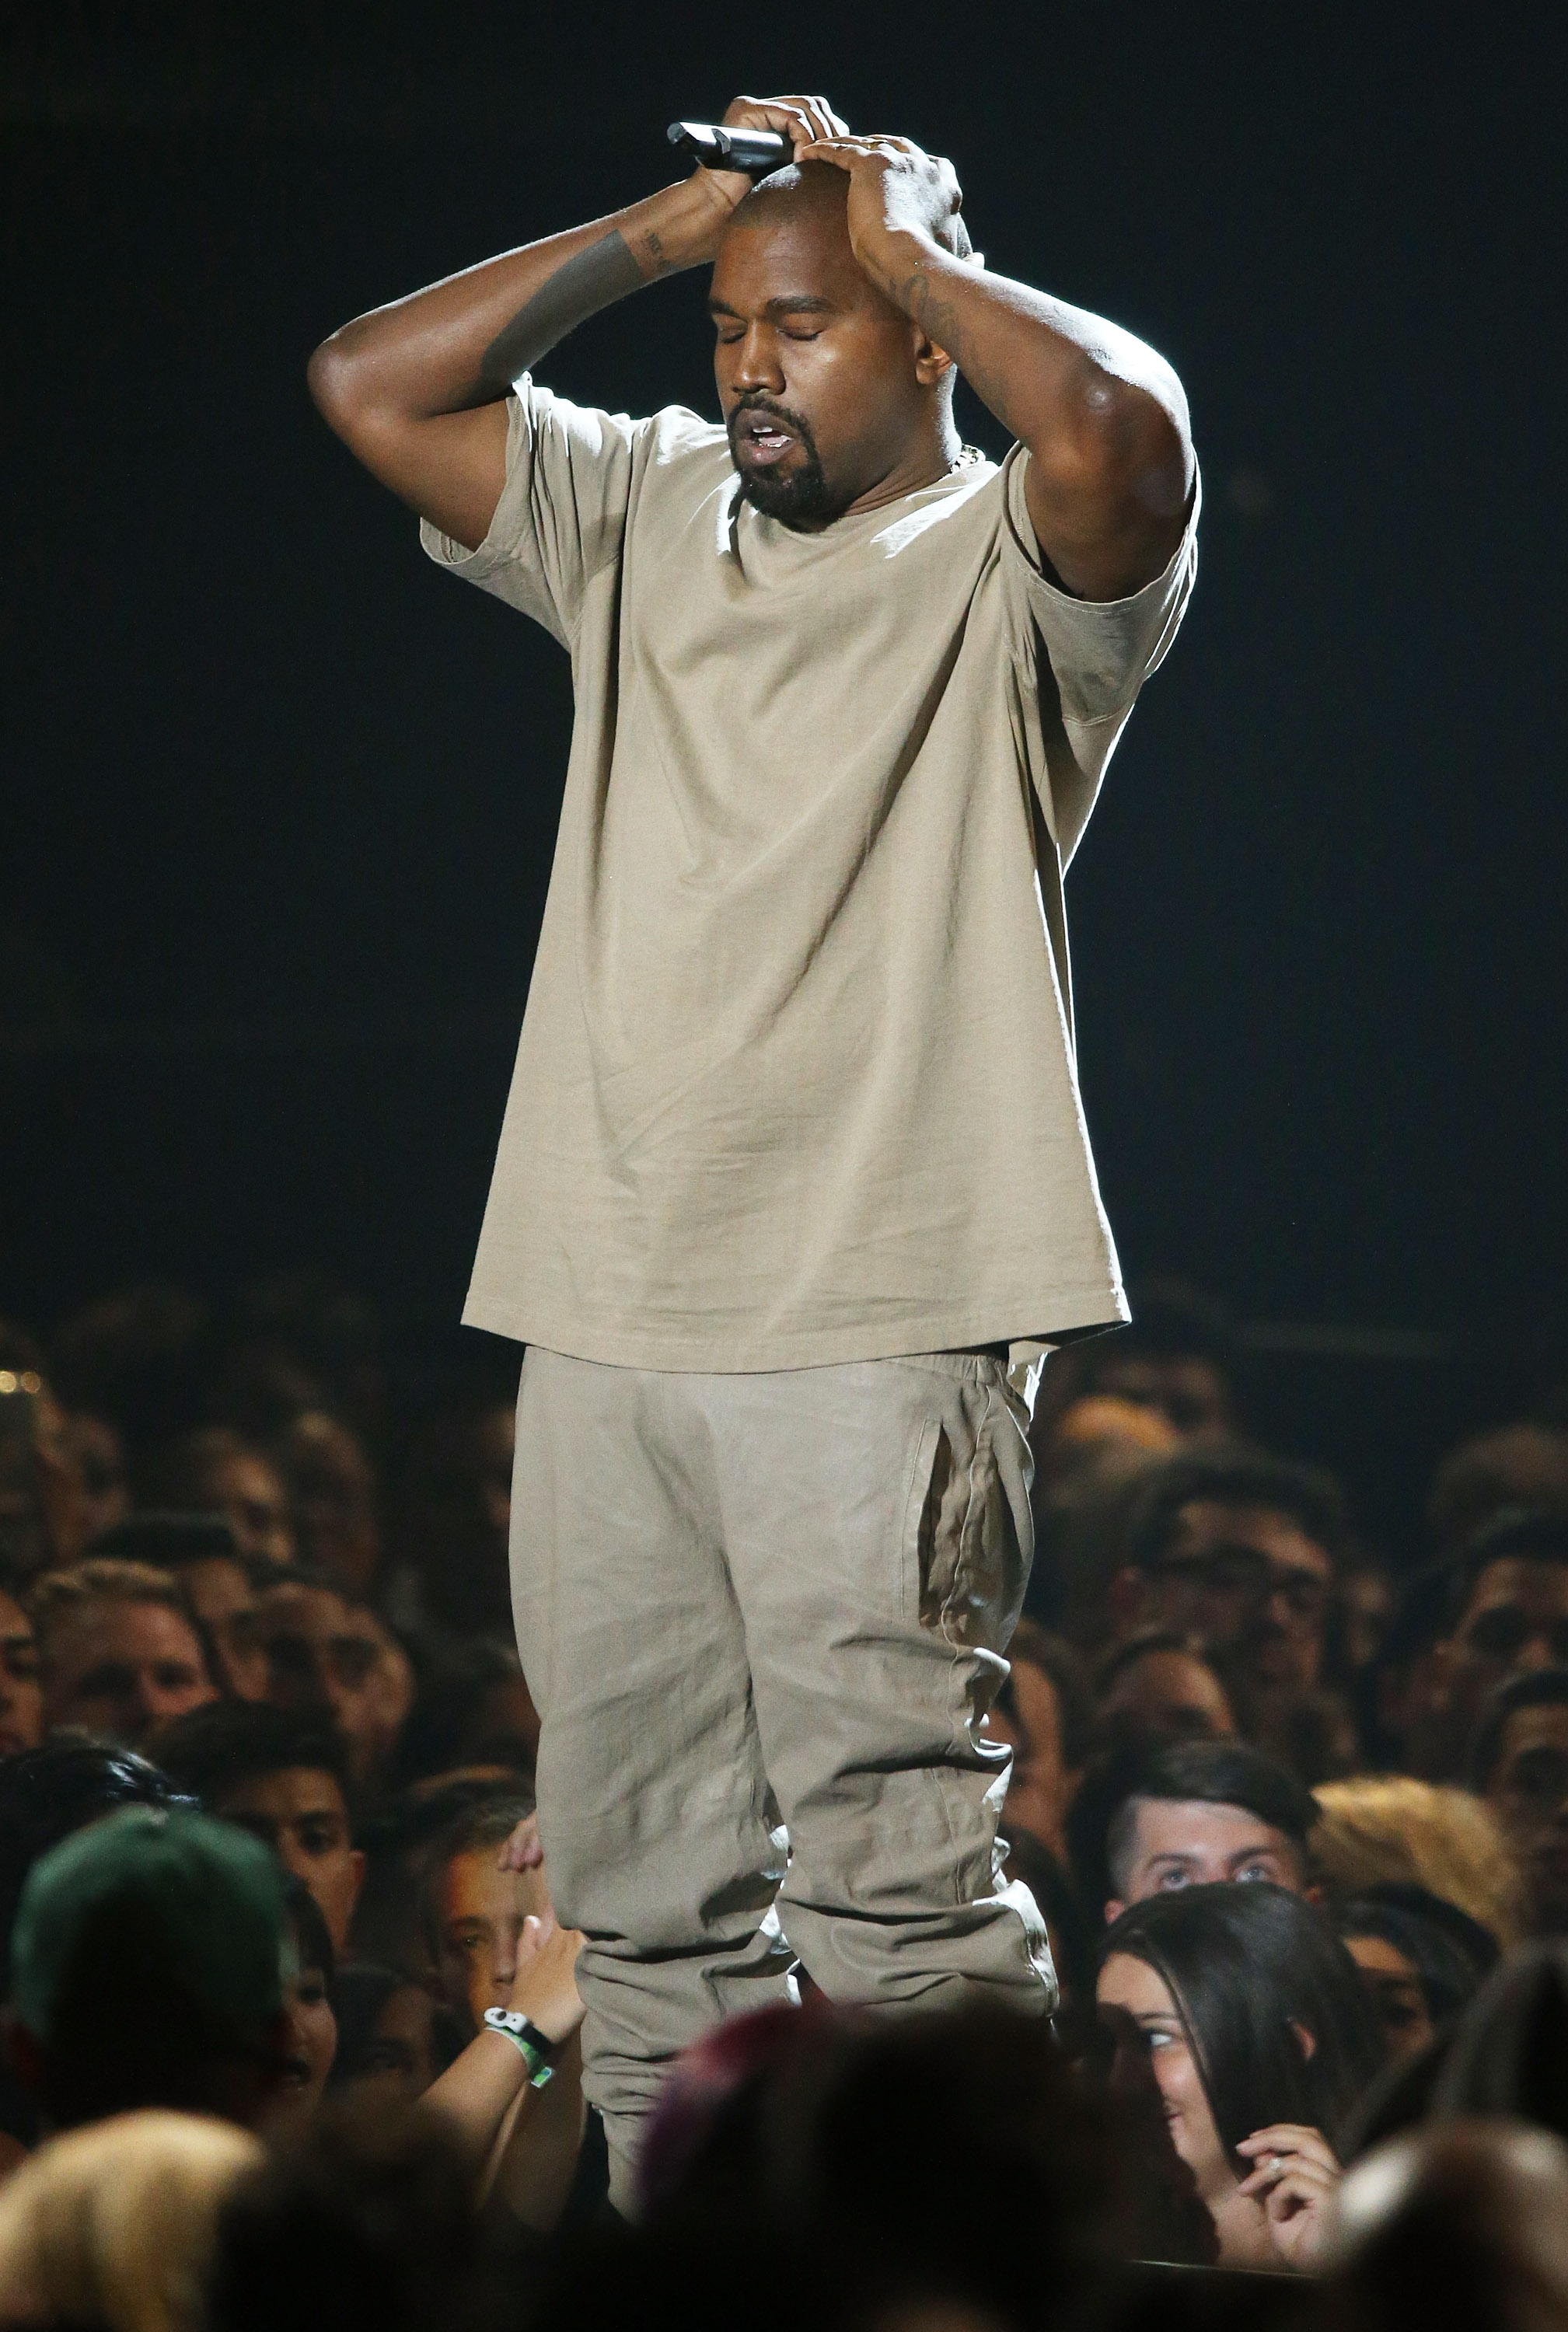 Kanye West Is Irrationally Afraid of 3-D Printing